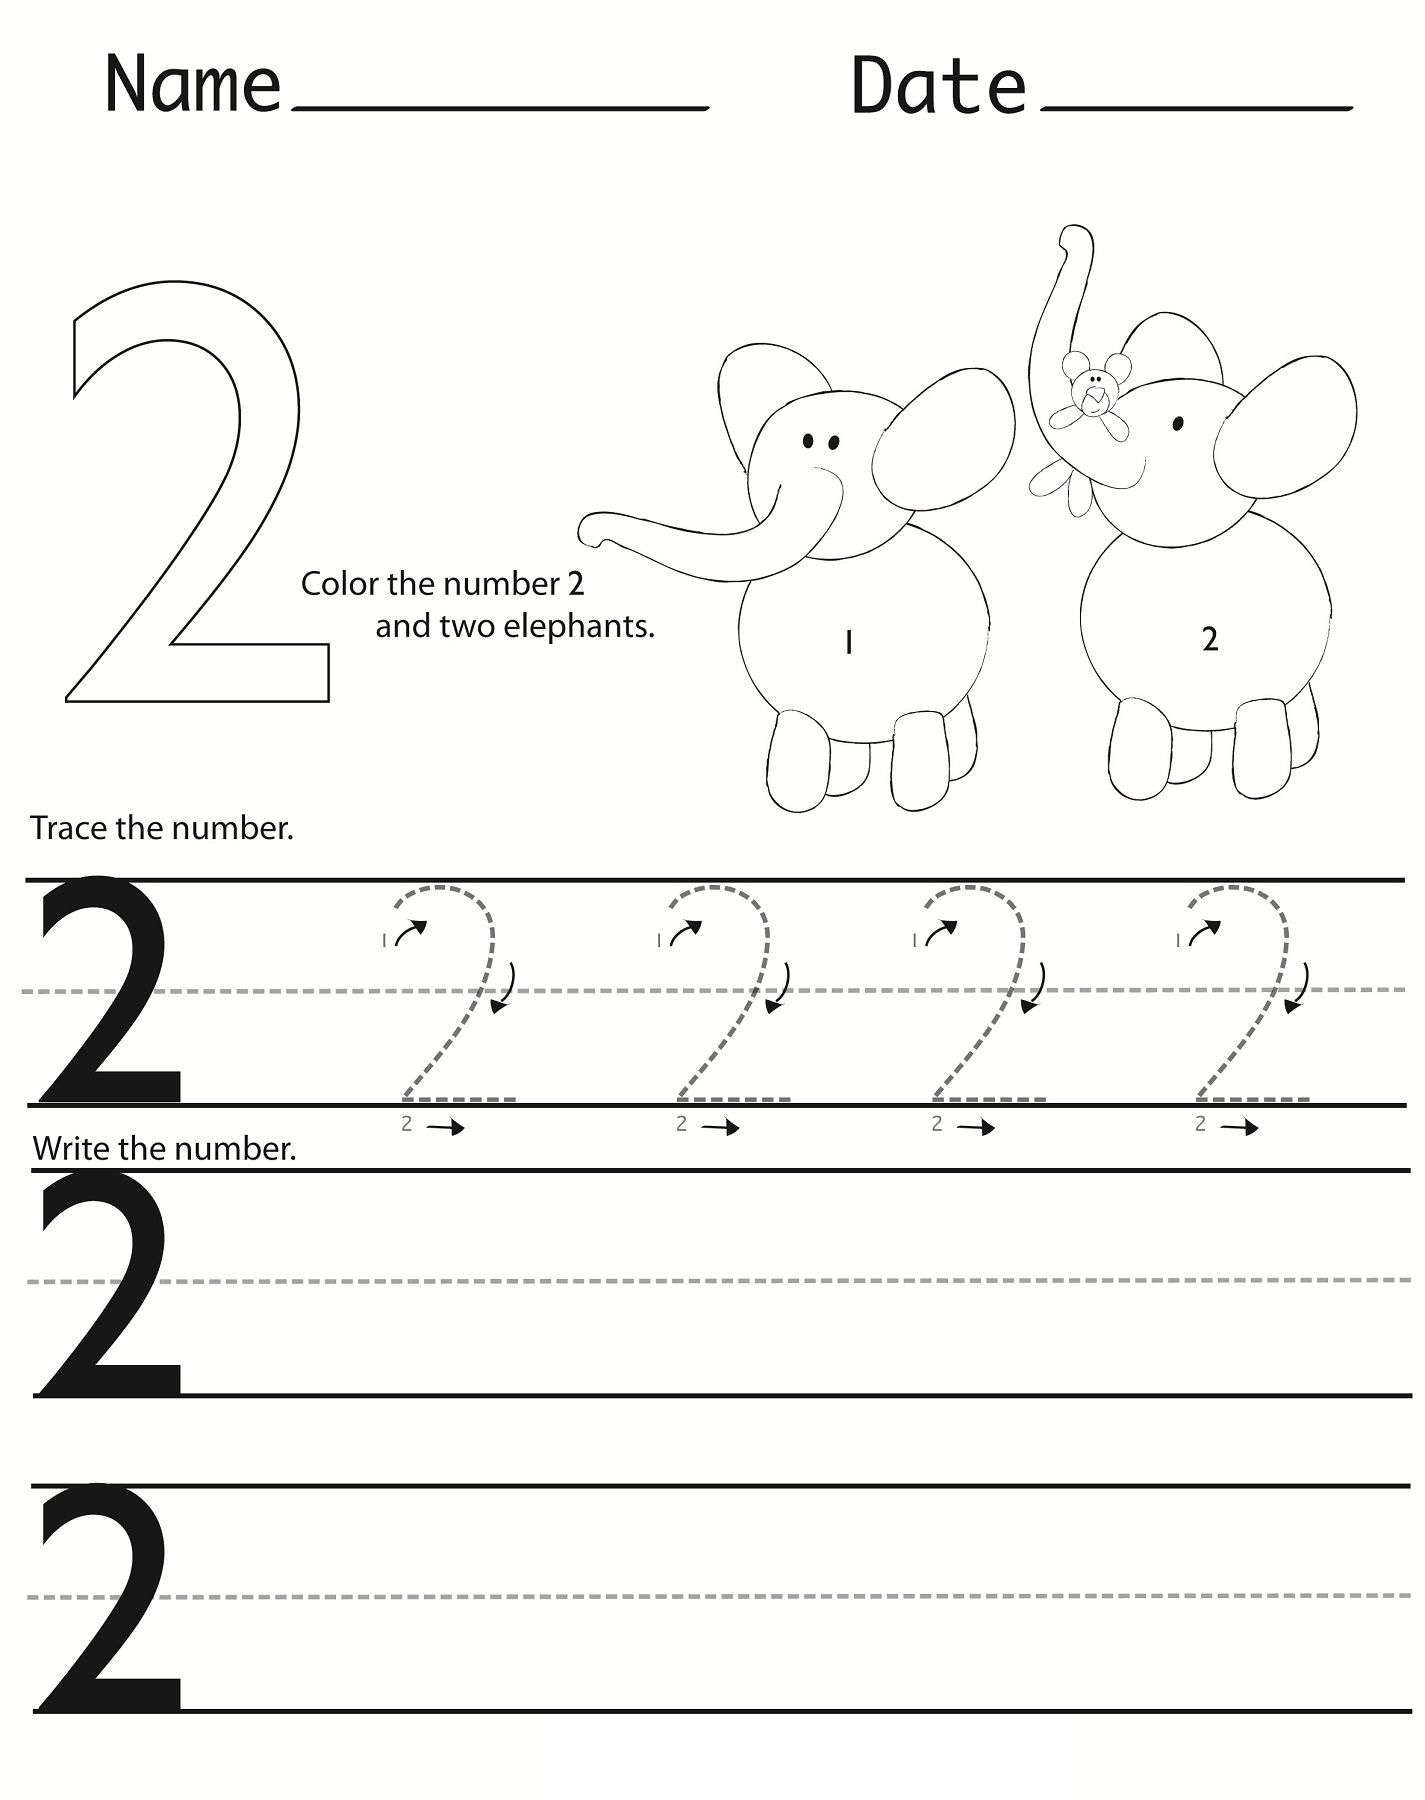 Writing Numbers Worksheets Printable   Activity Shelter   Kids ...